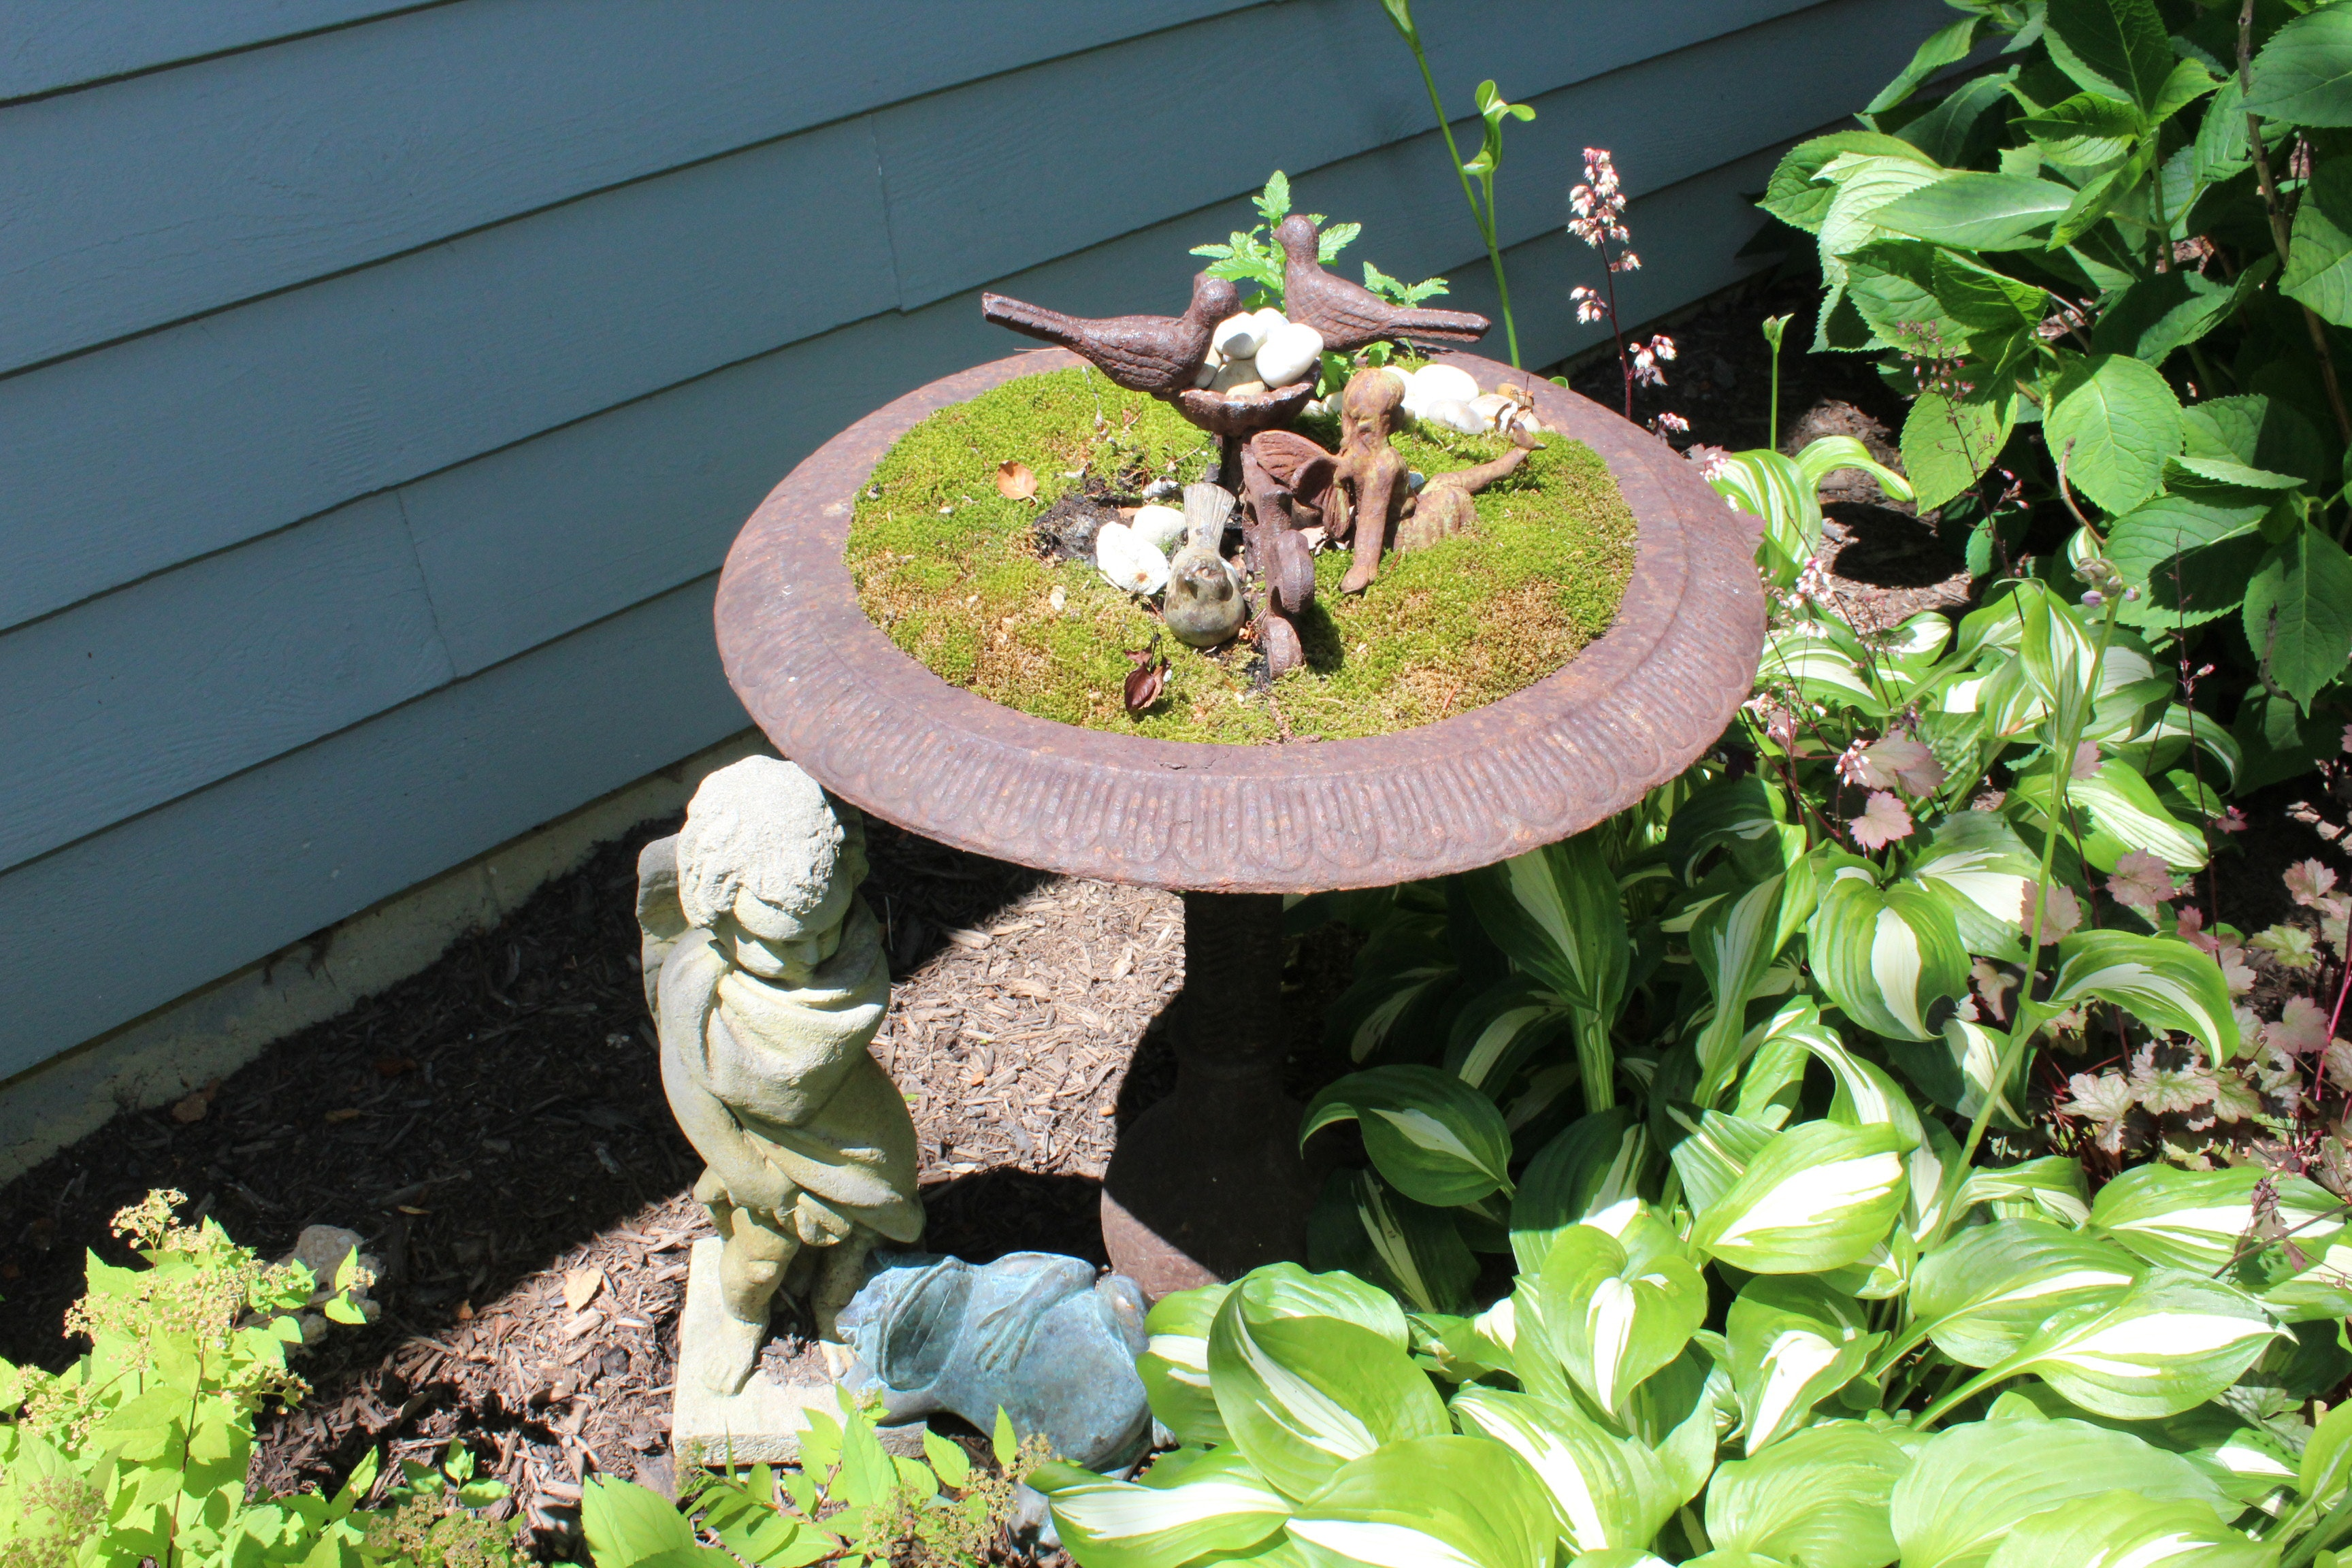 Planted Bird Bath With Ceramic and Brass Lawn Sculptures